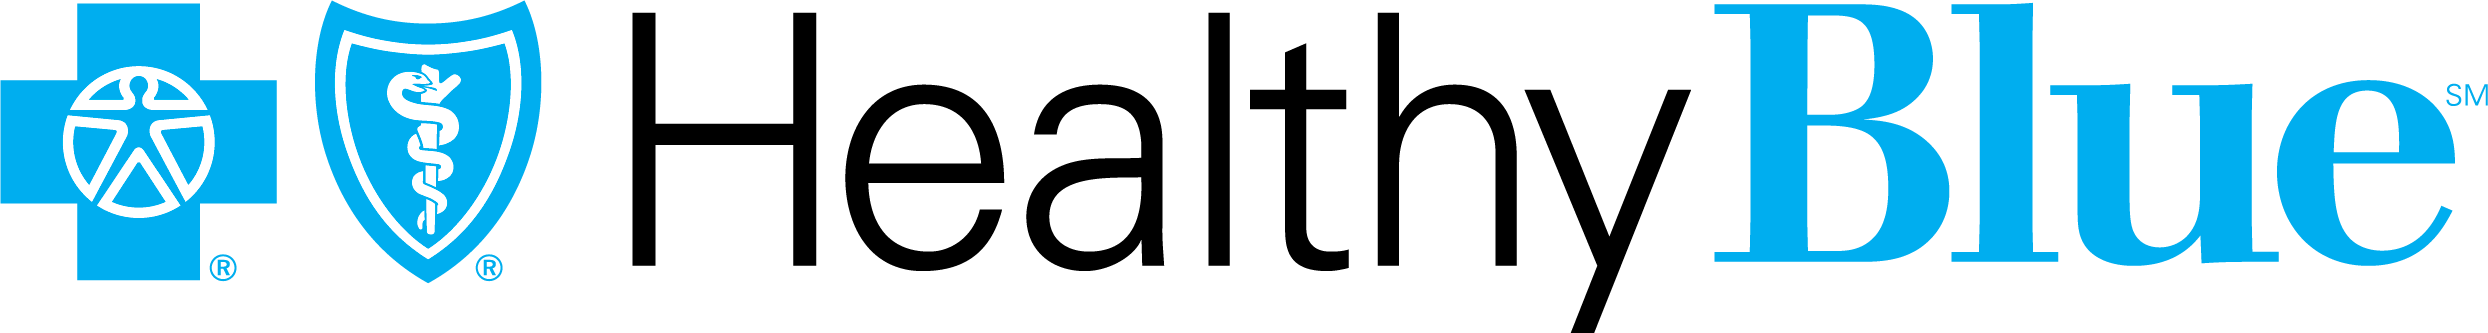 clear anthem logo transparent